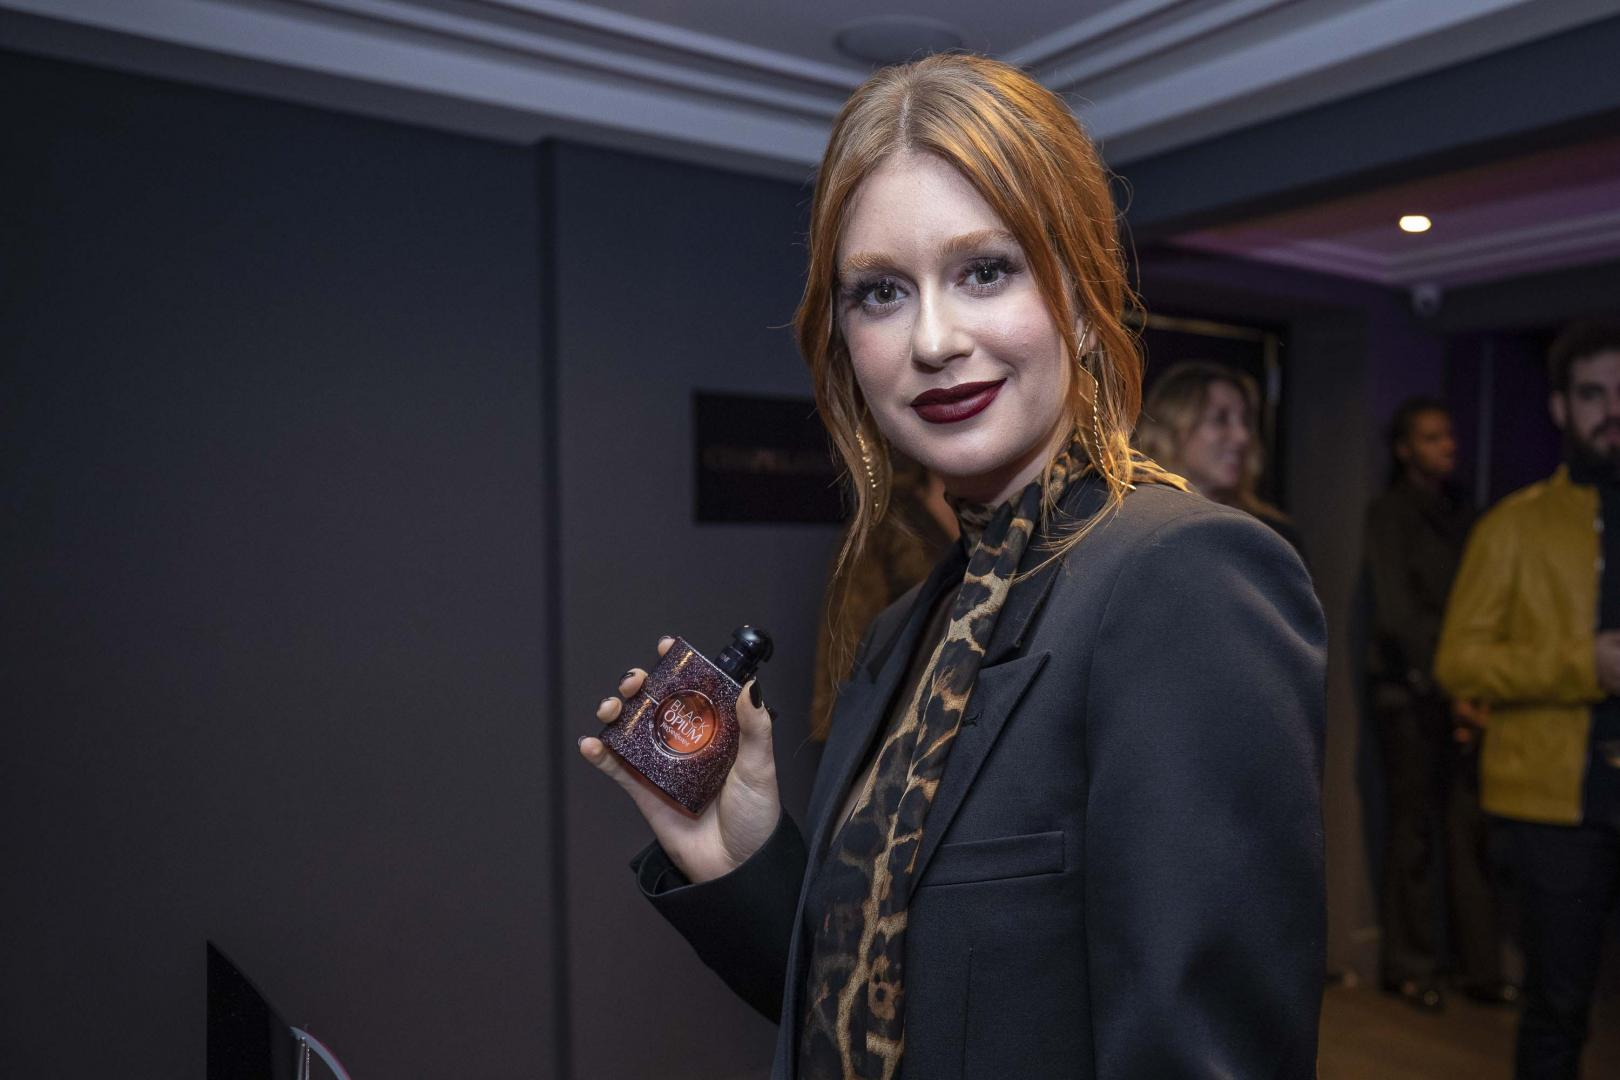 Marina Ruy Barbosa participa do primeiro evento de Yves Saint Laurent no Brasil